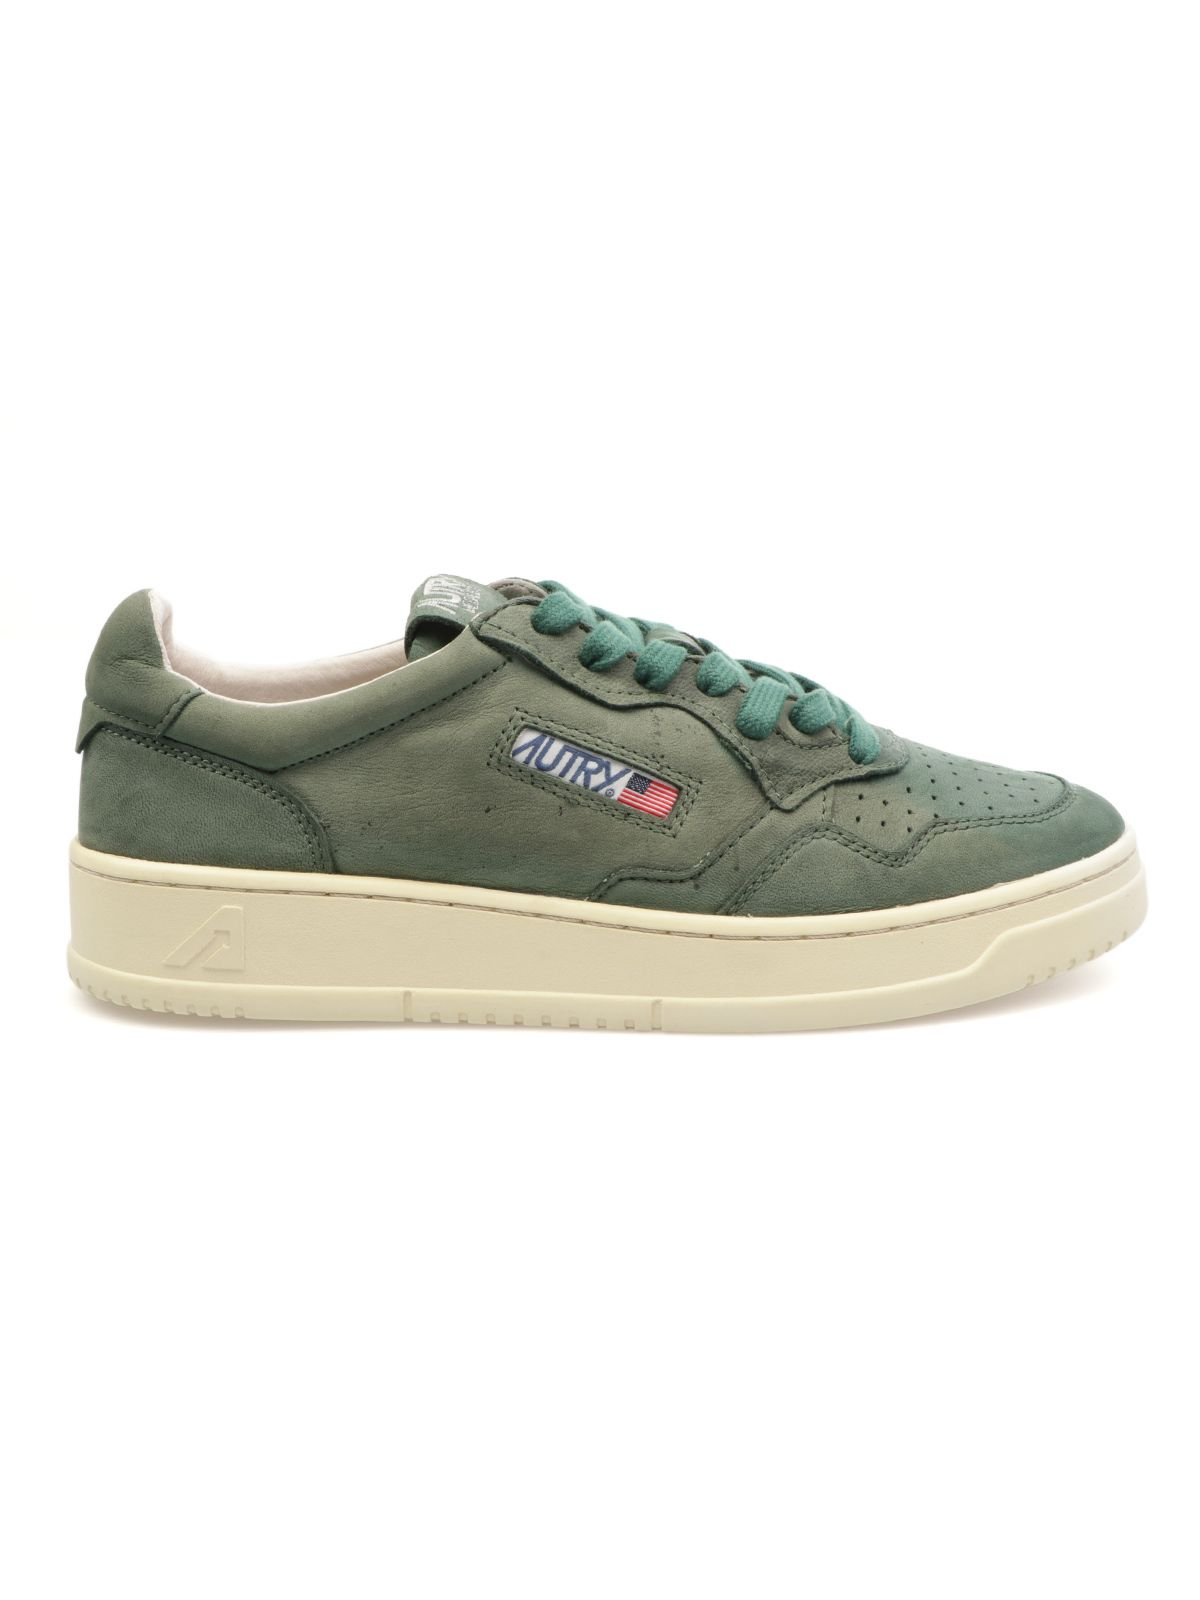 Autry Shoes AUTRY MEN'S AULMNGG21 GREEN SUEDE SNEAKERS